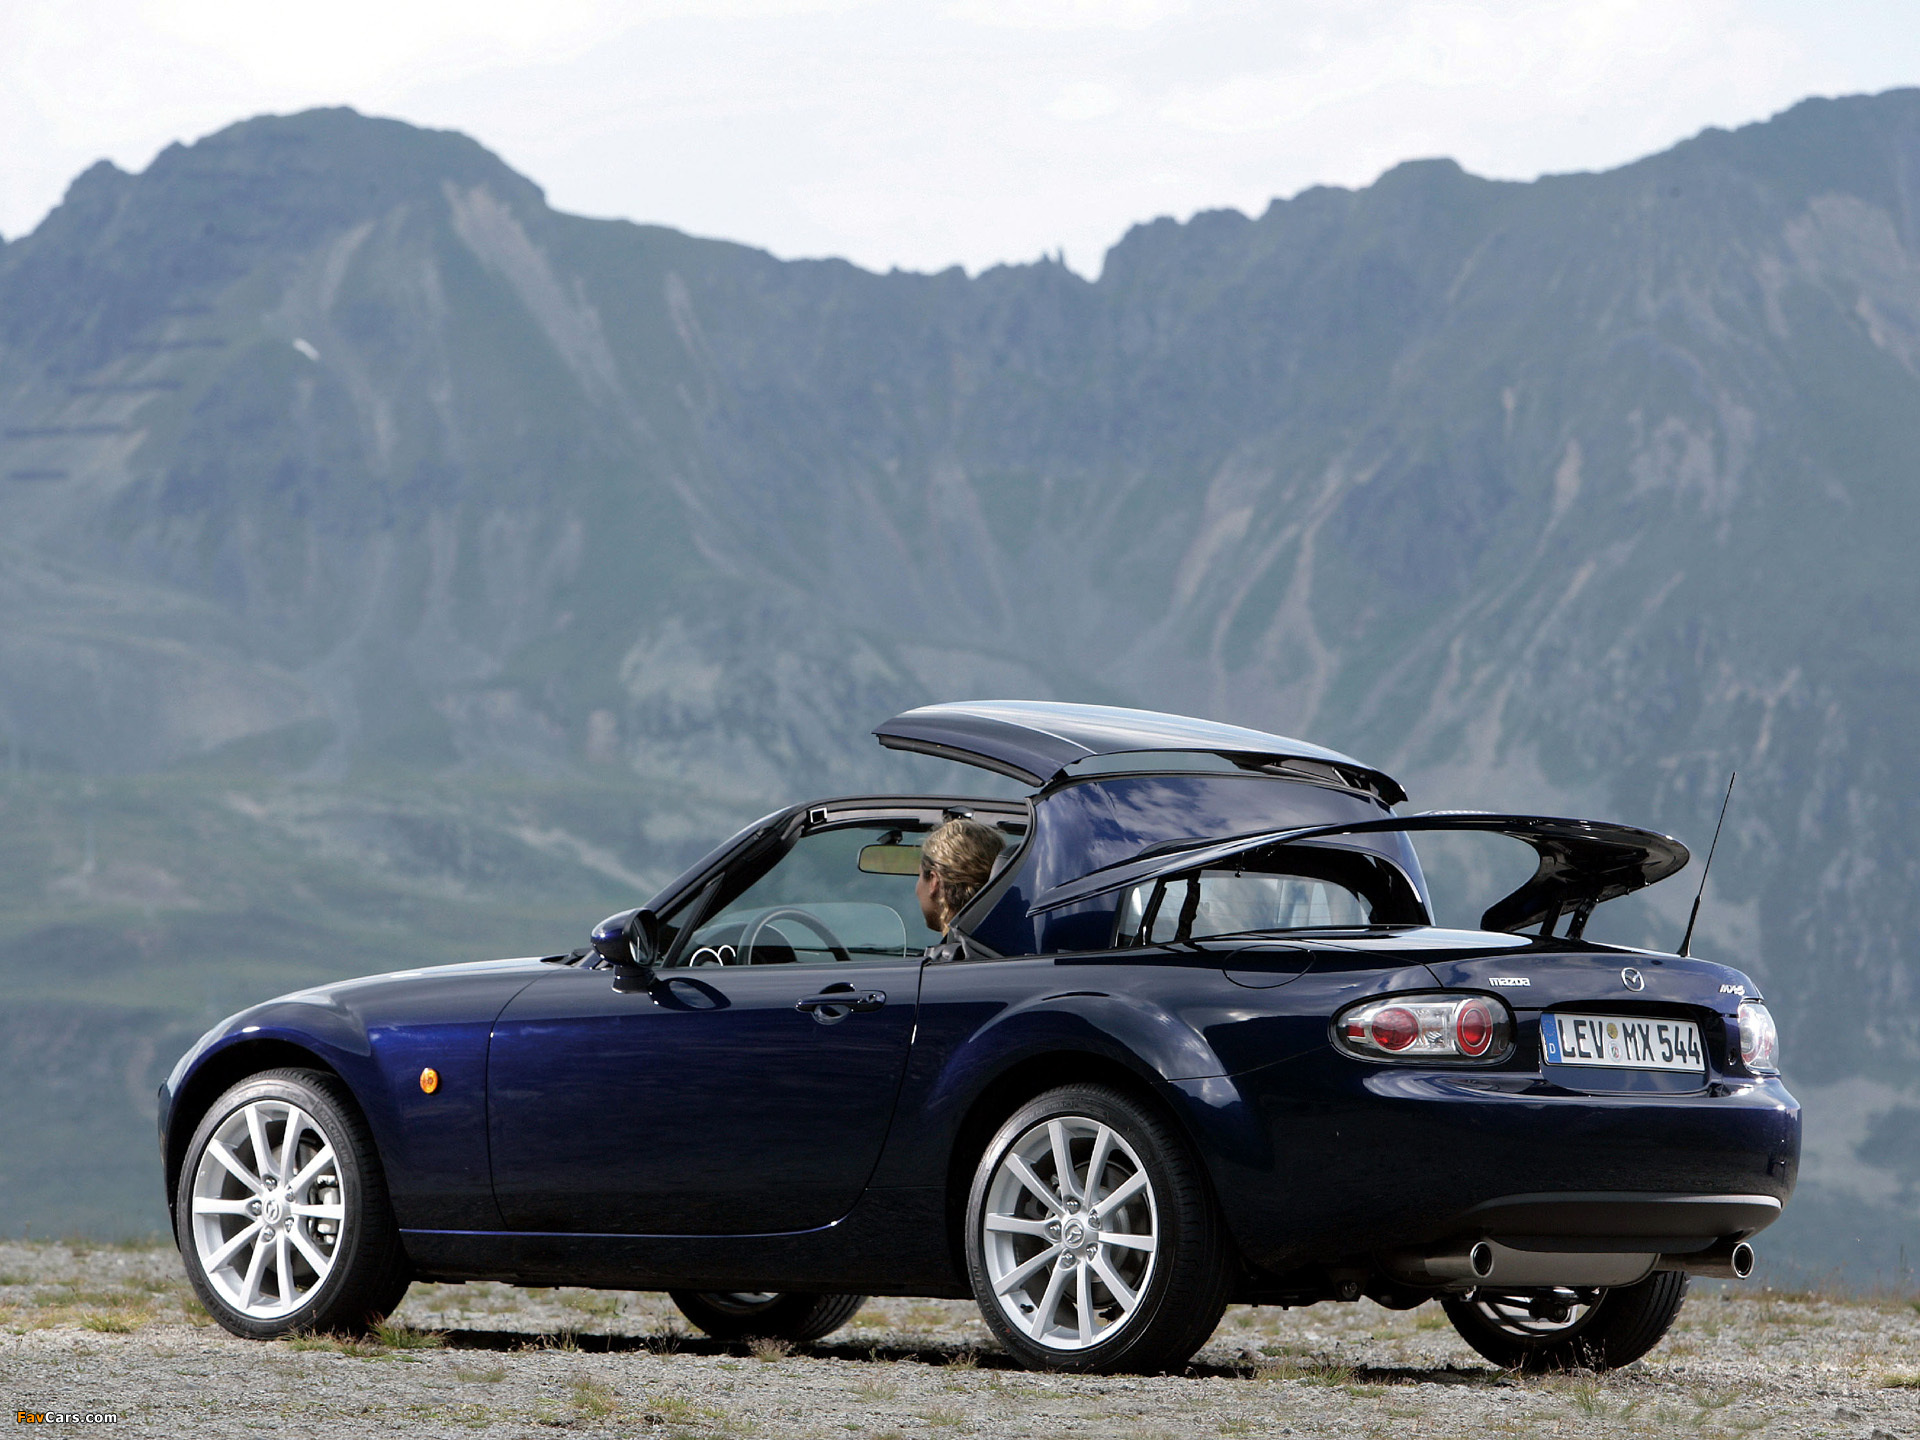 mazda mx 5 roadster coupe nc 2005 08 wallpapers 1920x1440. Black Bedroom Furniture Sets. Home Design Ideas